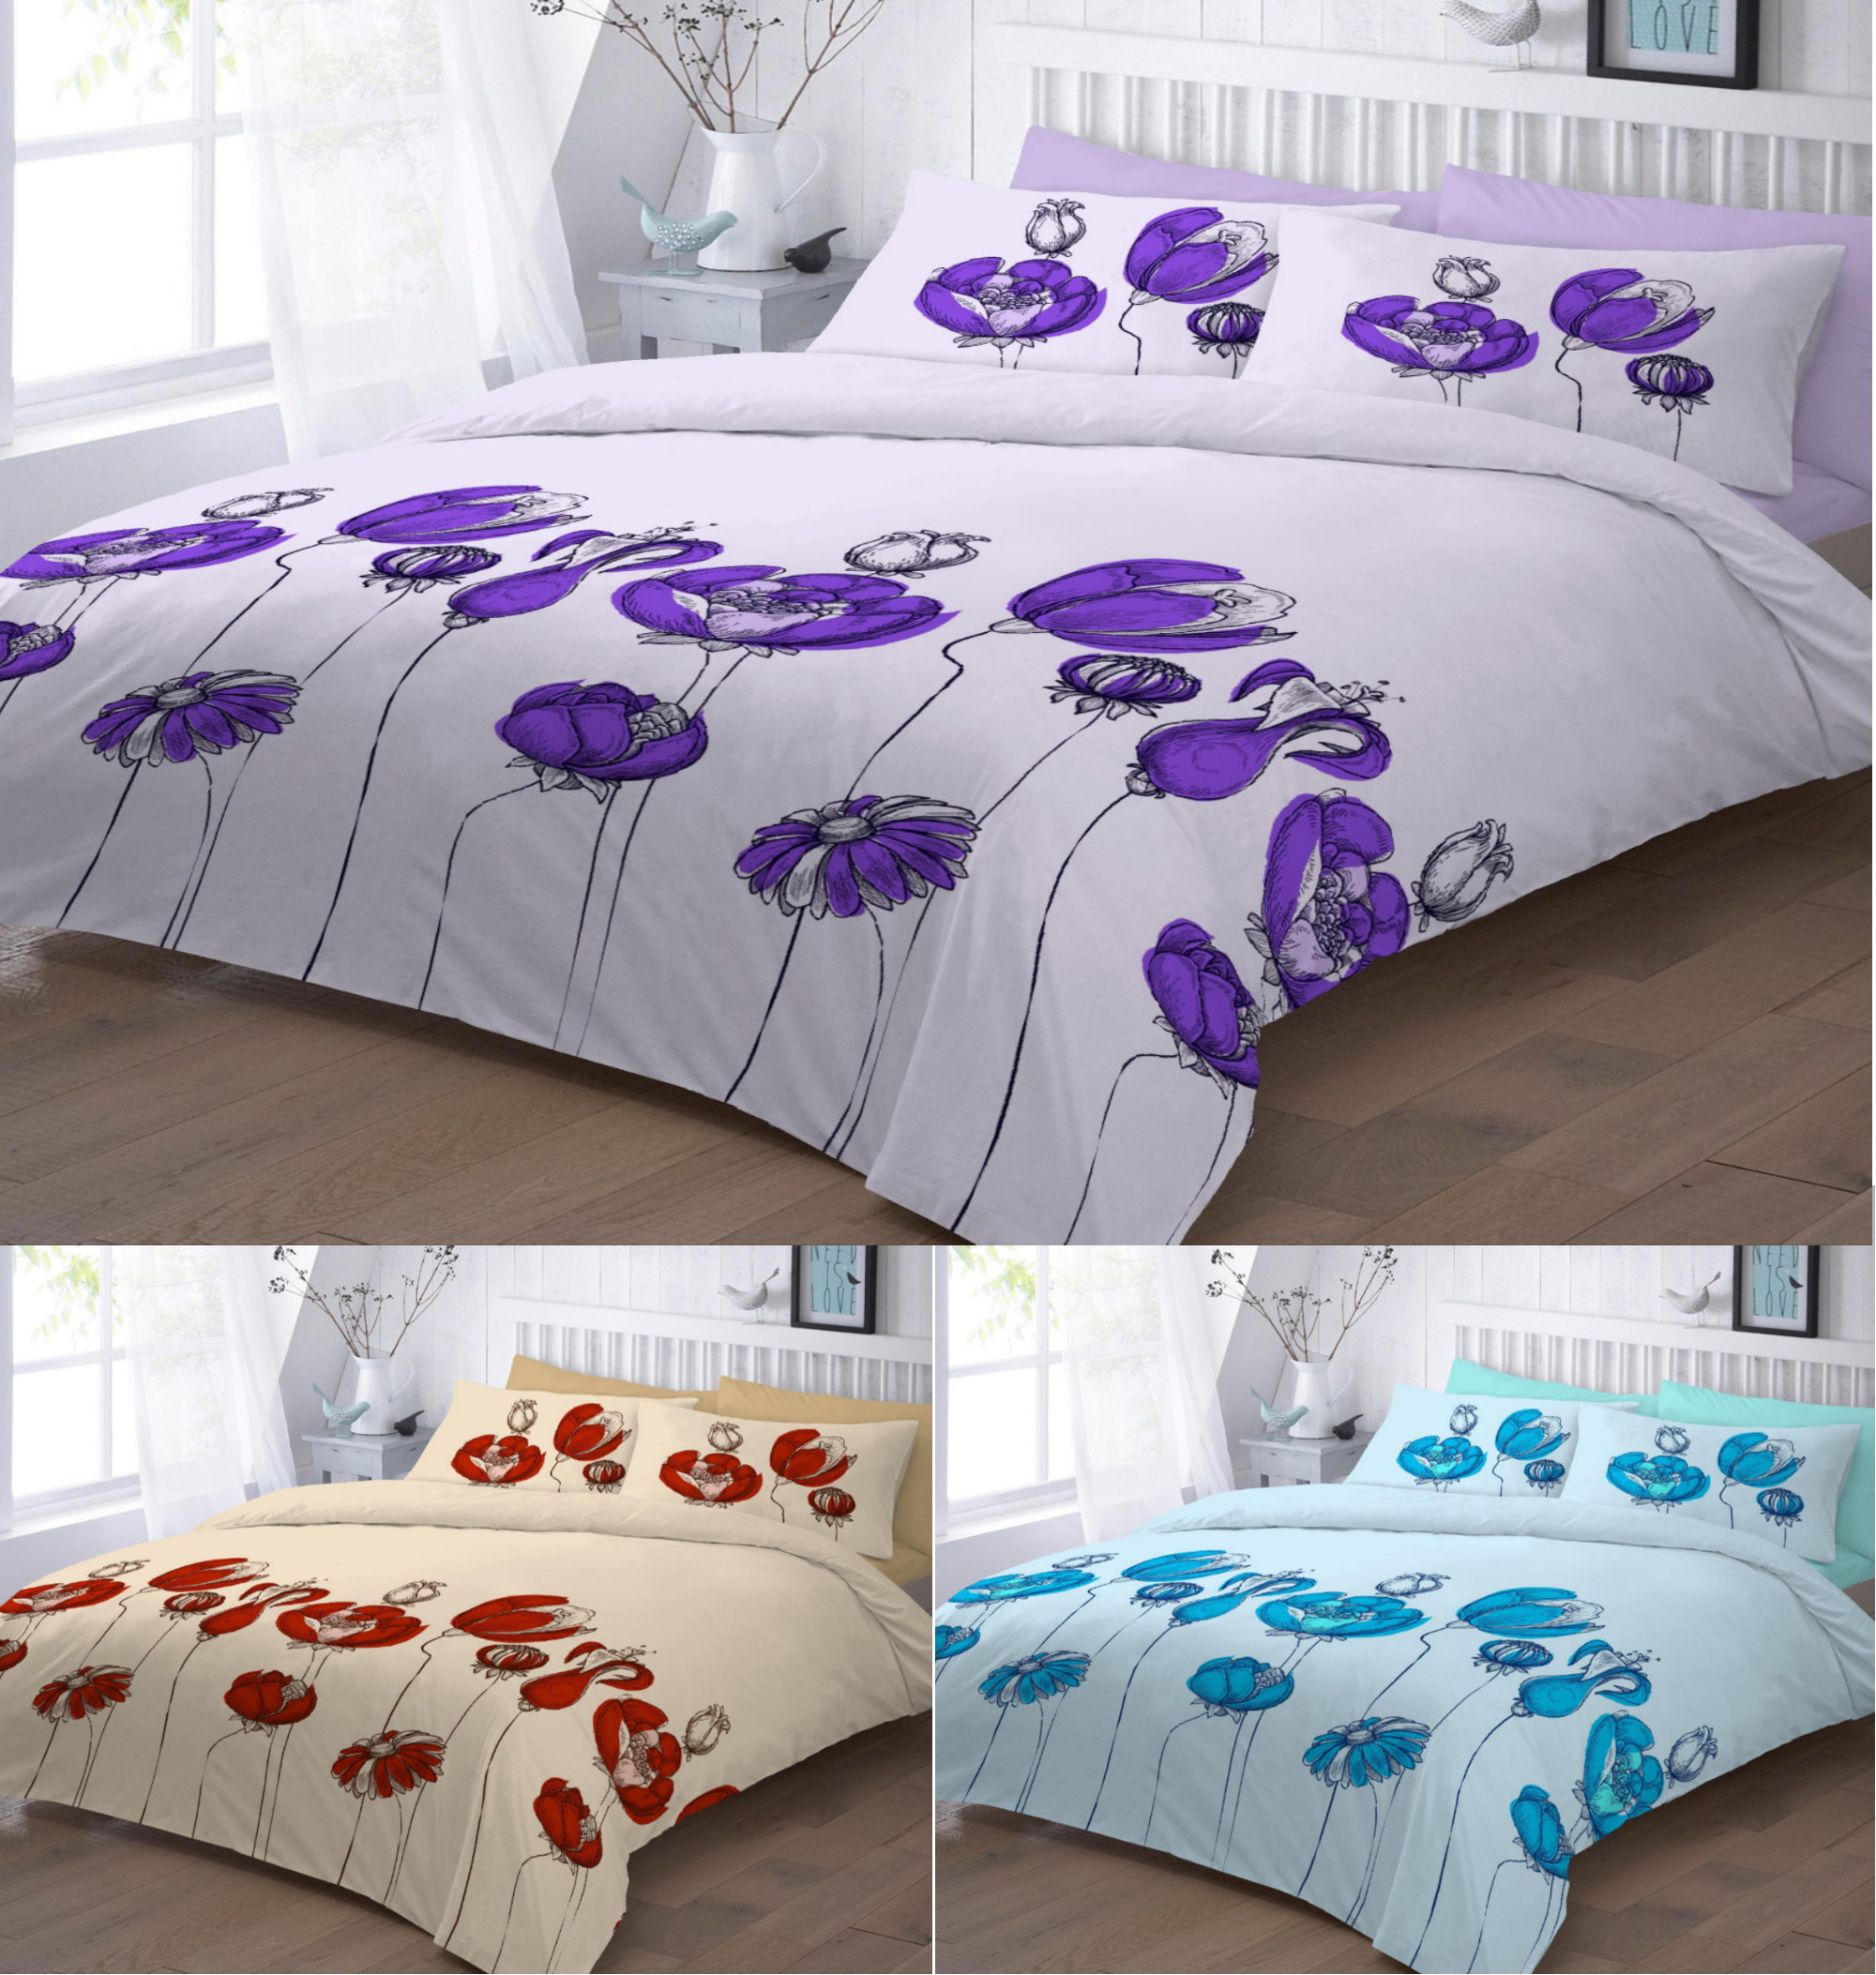 matching australia and curtains full better homes highest cushion knockout with clarity cover set gardens bed duck twin appealing single white duvet bedding gallery comforter baby target ikea sets piece floral egg nursery or ruching king uk amazon com winning walmart